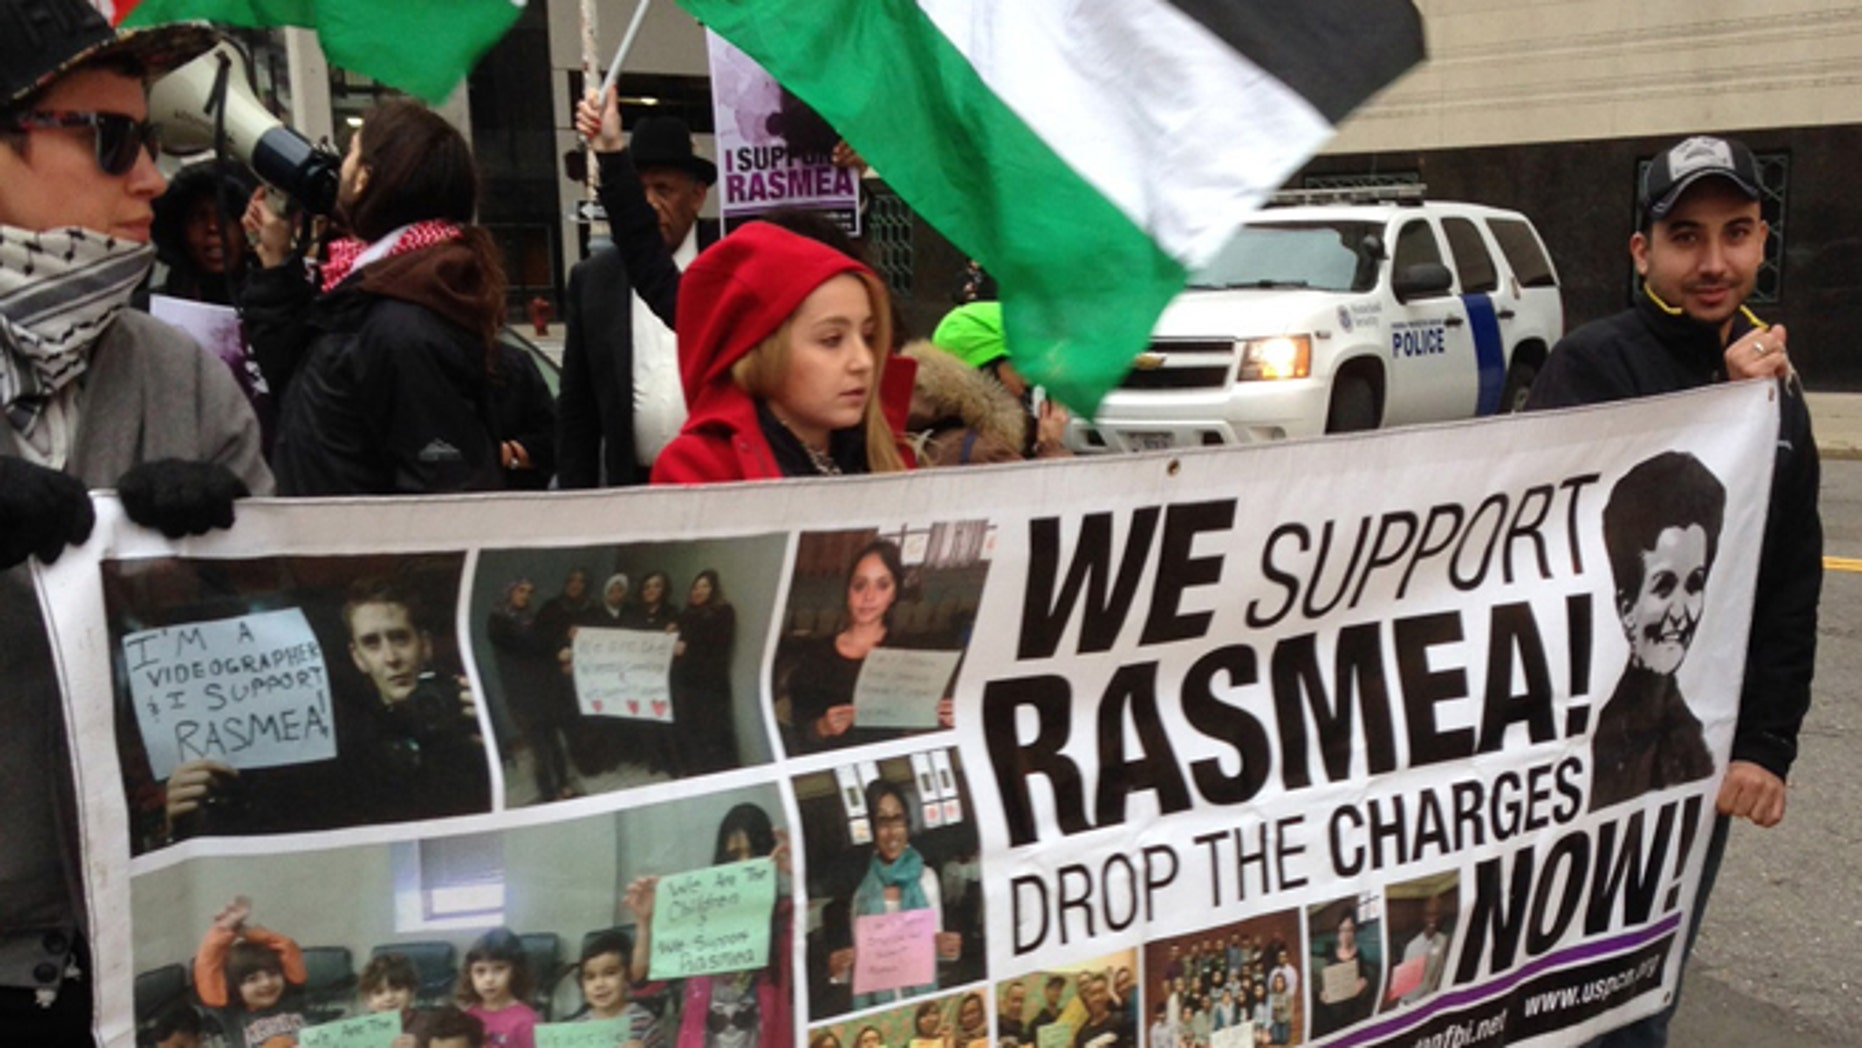 Nov. 4, 2014: Rasmieh Odeh's supporters march outside the federal courthouse in Detroit (AP)